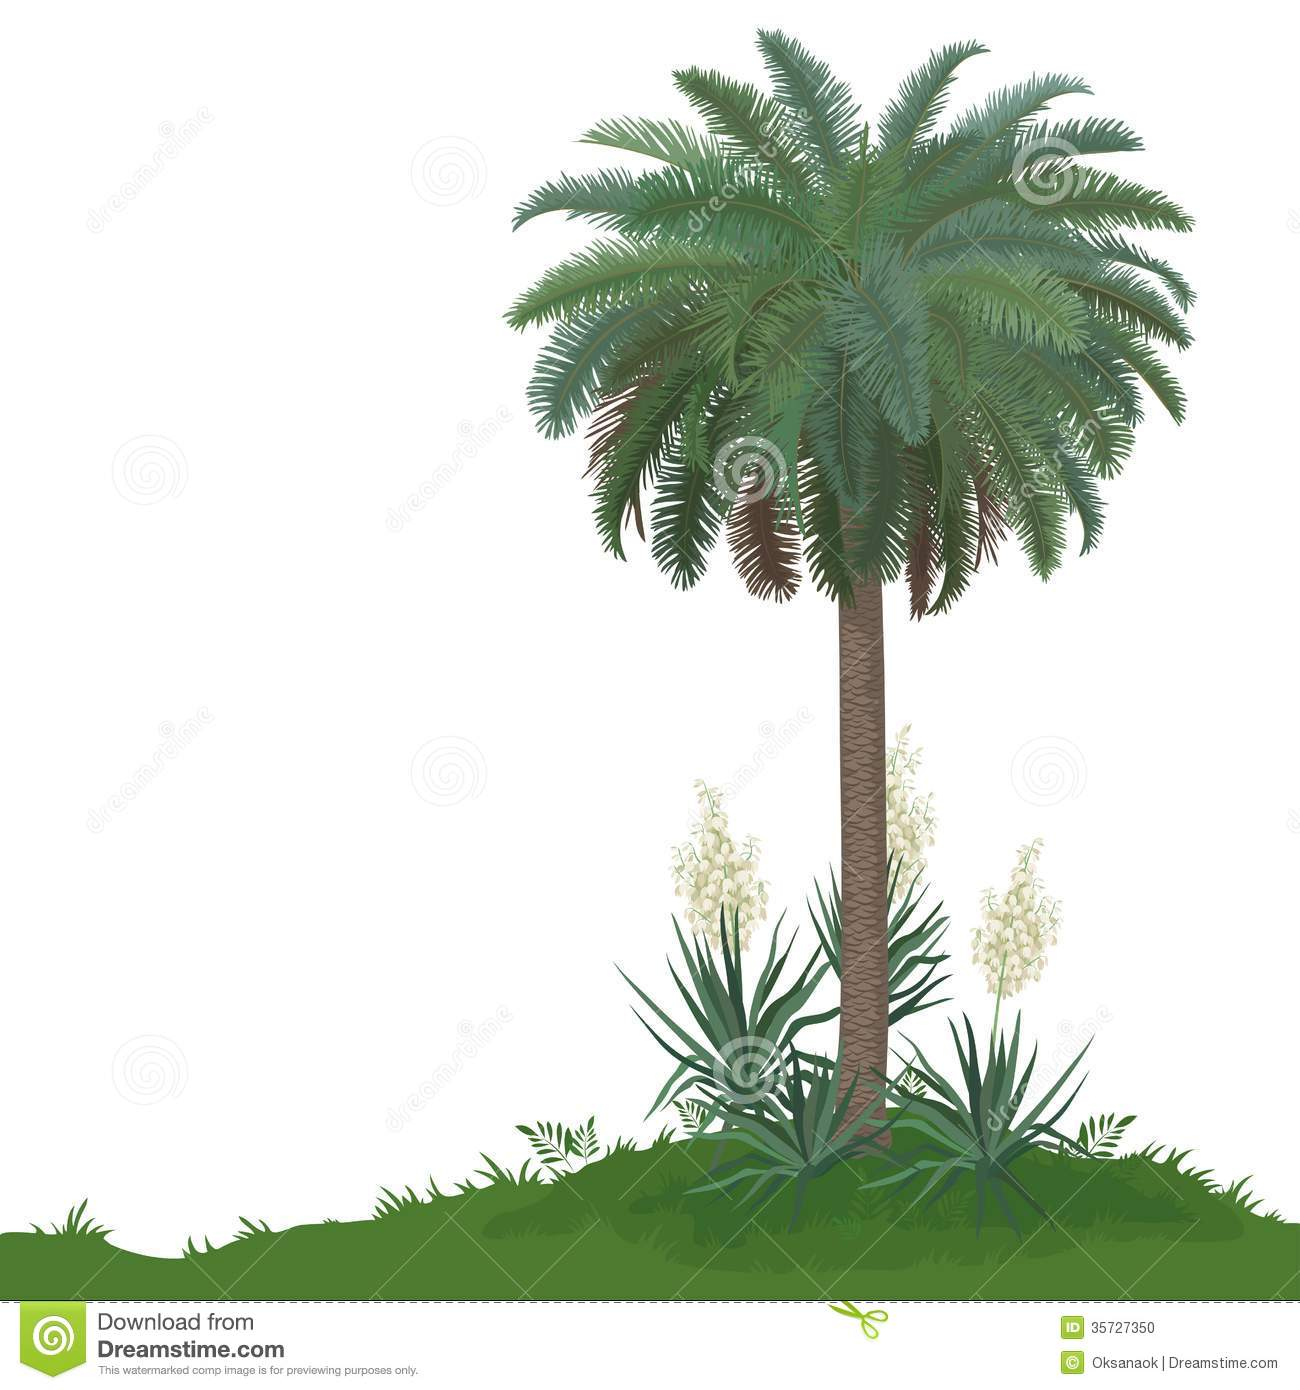 palm tree and plants yucca stock vector illustration of leaf 35727350. Black Bedroom Furniture Sets. Home Design Ideas